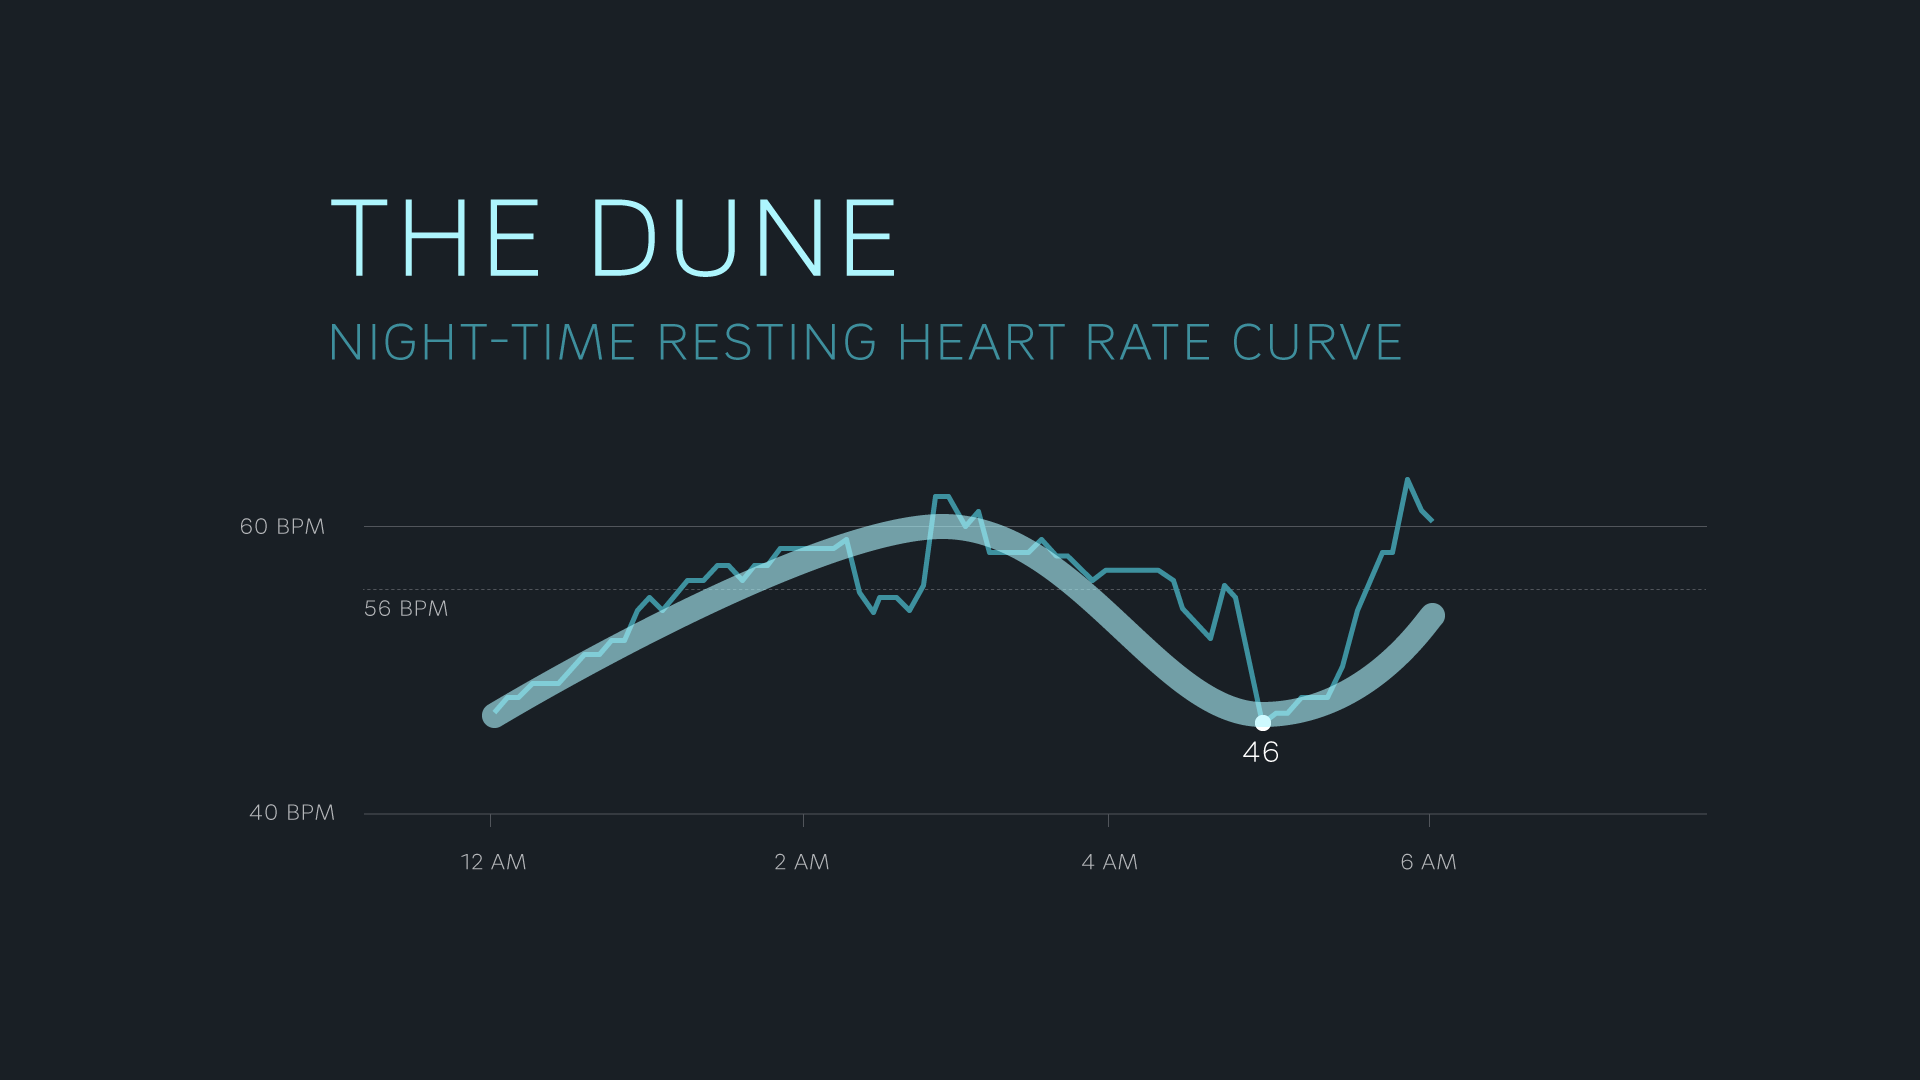 The dune-shaped heart rate curve